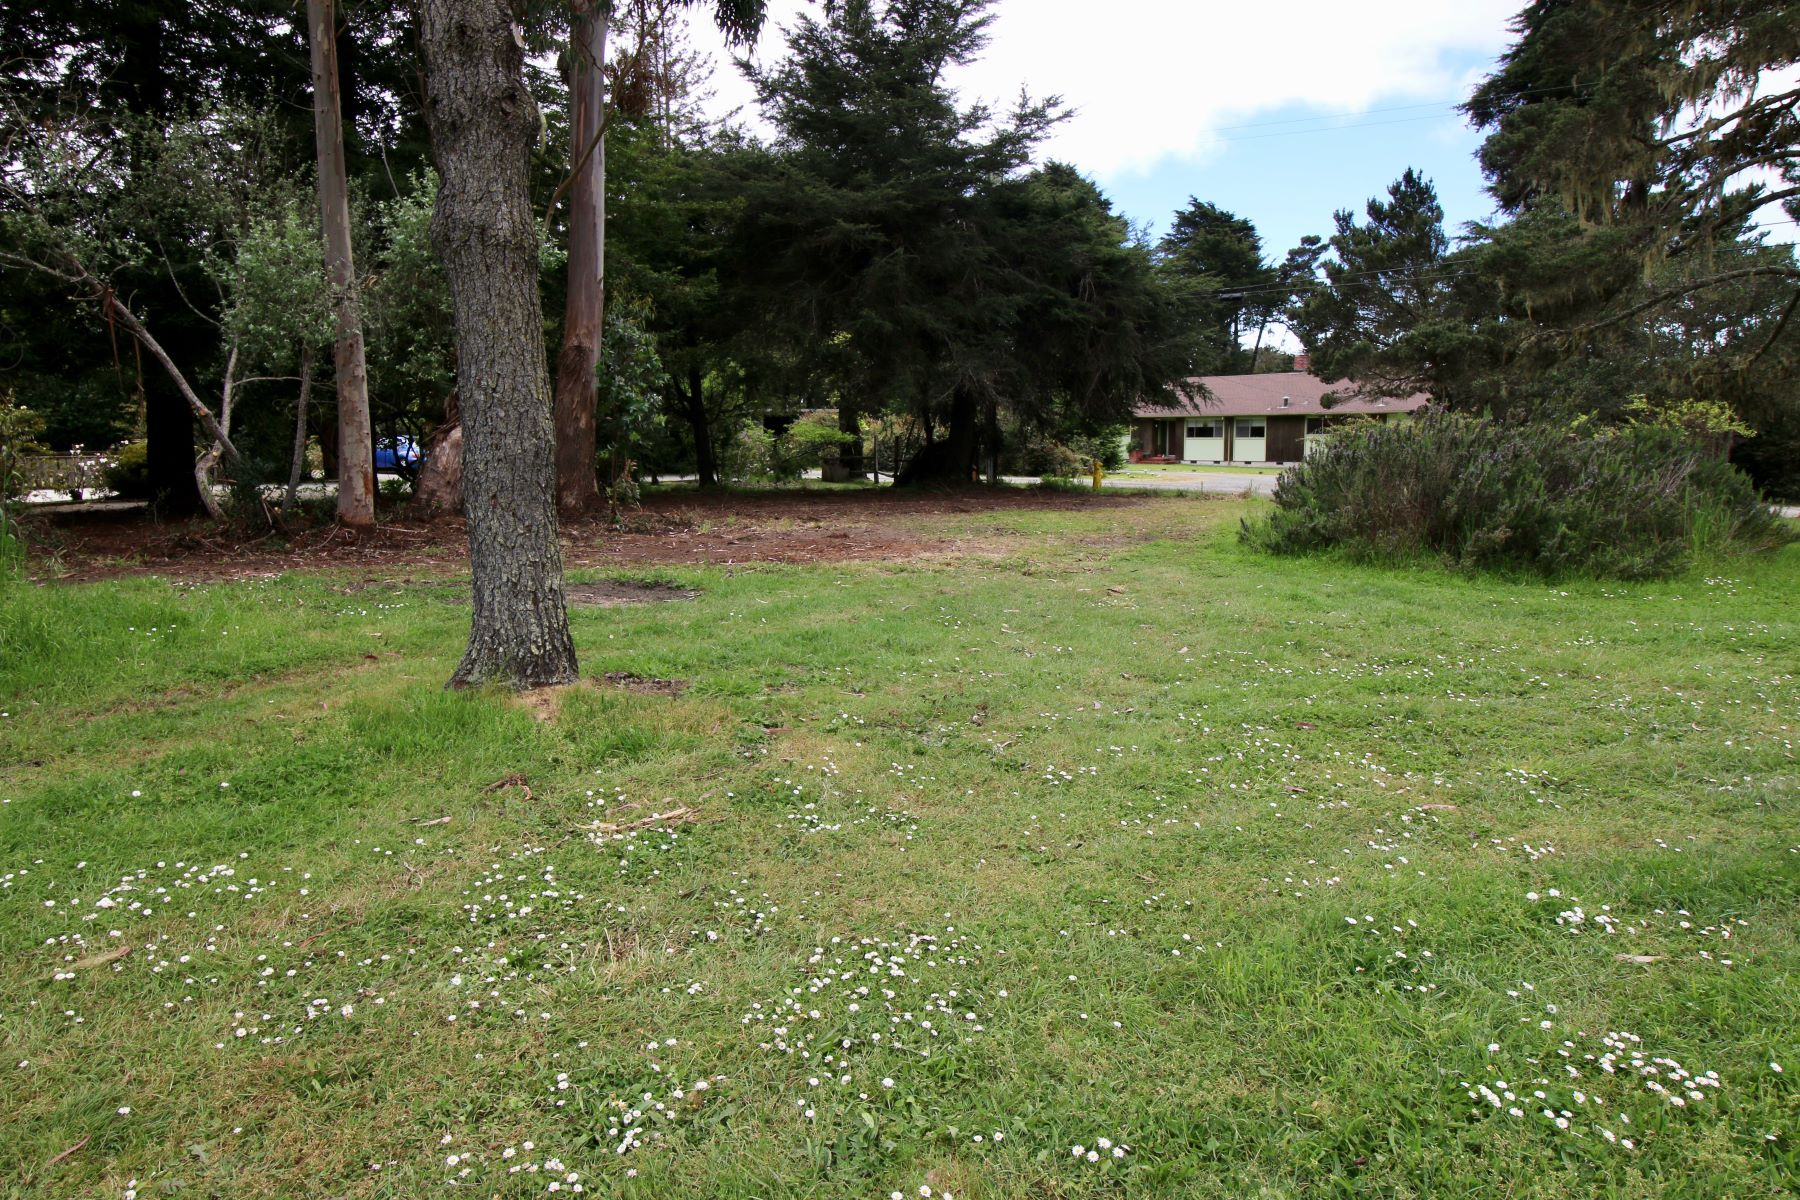 Property for Sale at Develop Your Dream Home 20 Swing Tree Lane Fort Bragg, California 95437 United States